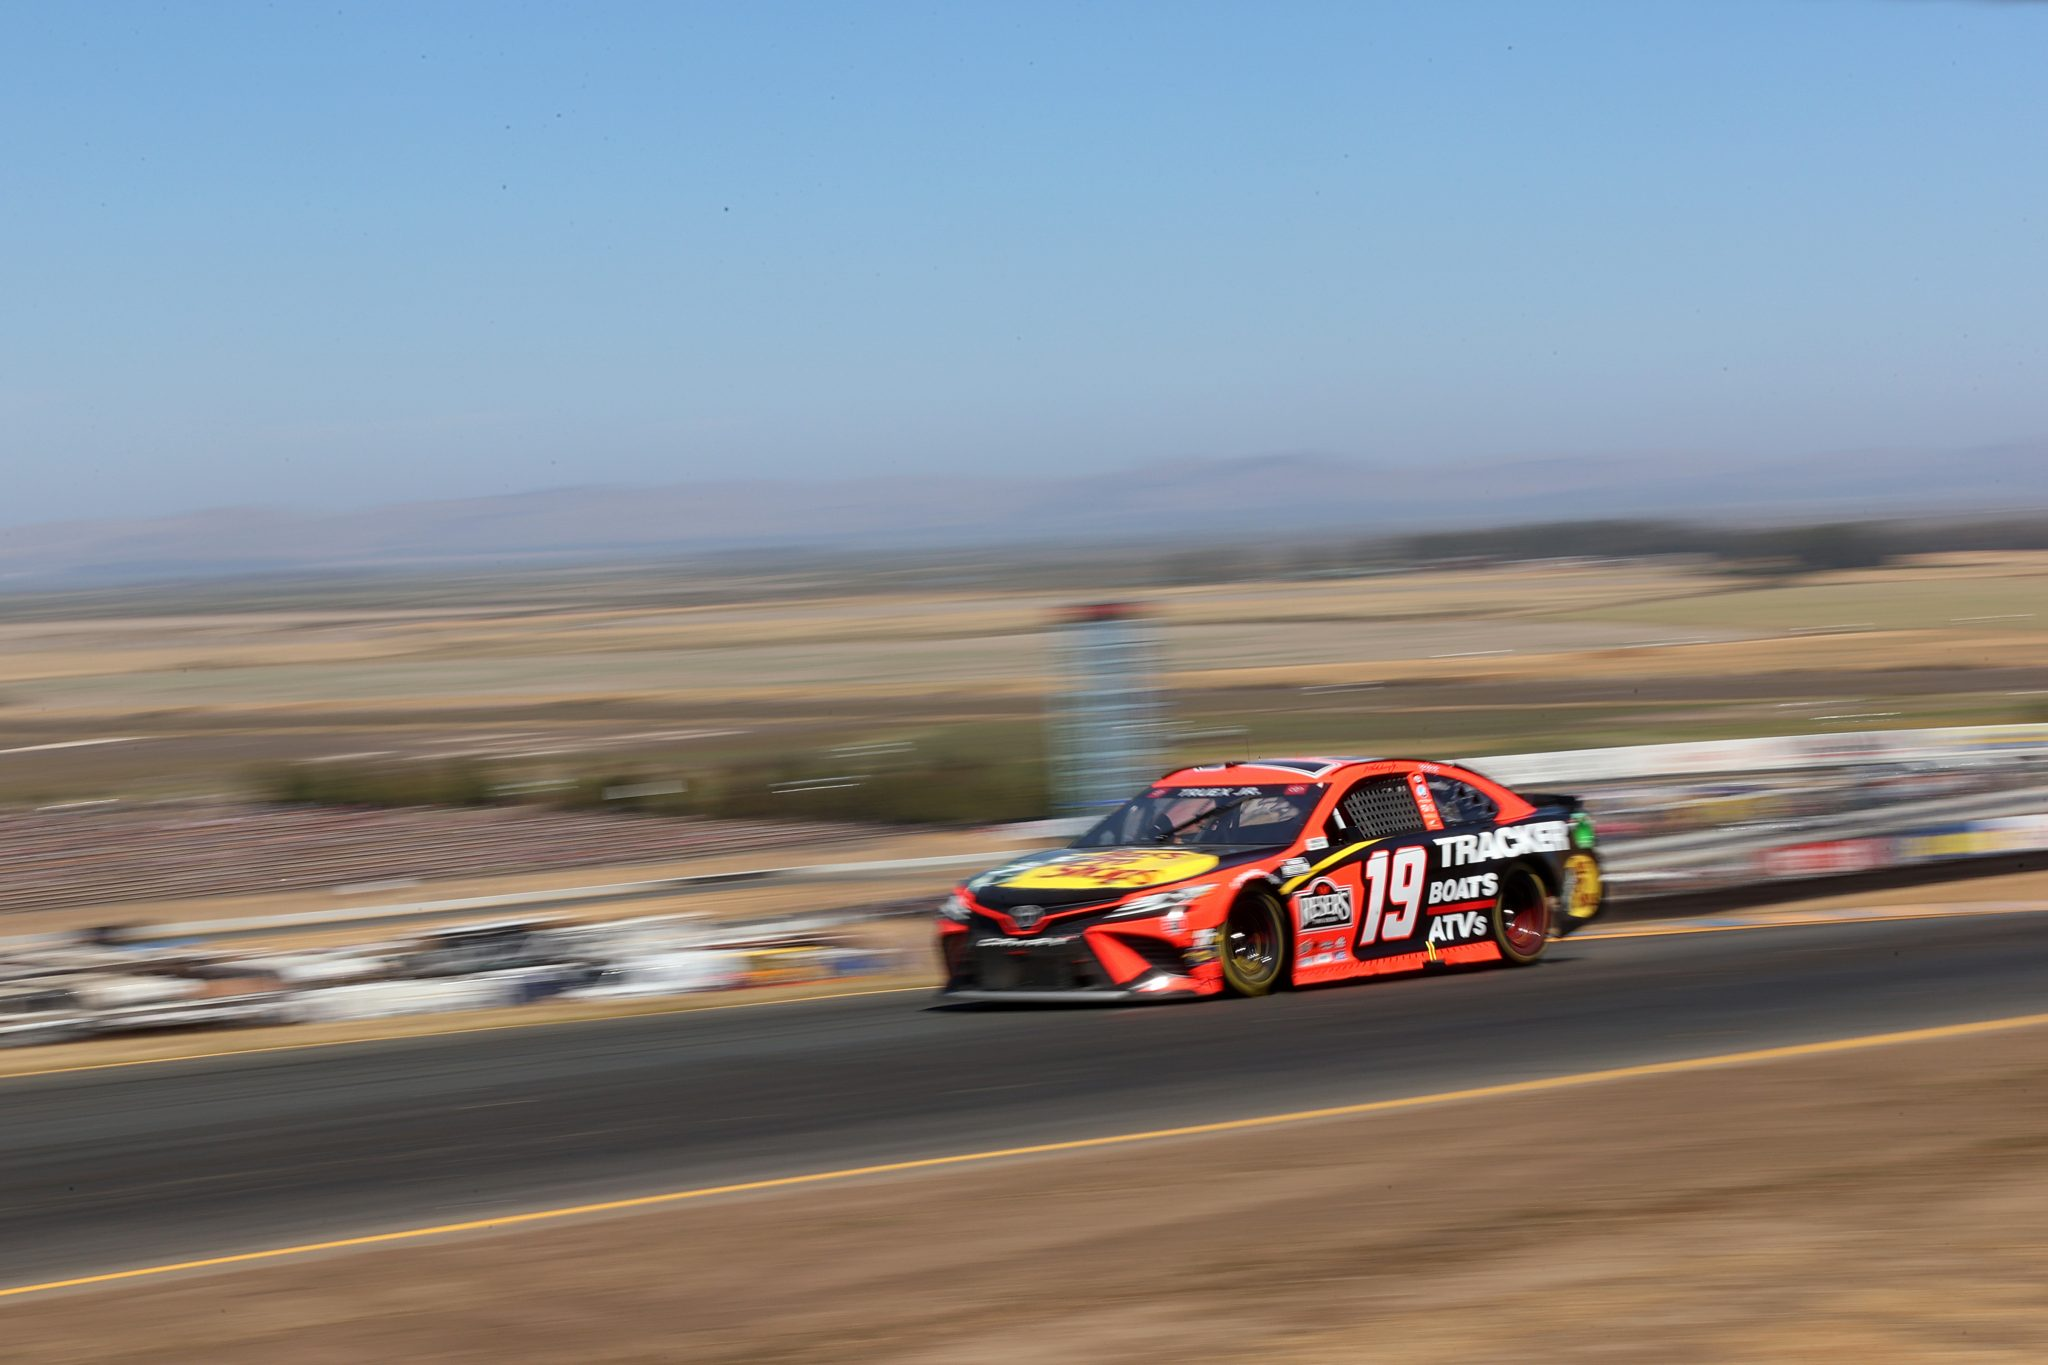 SONOMA, CALIFORNIA - JUNE 06: Martin Truex Jr., driver of the #19 Bass Pro Toyota, drives during the NASCAR Cup Series Toyota/Save Mart 350 at Sonoma Raceway on June 06, 2021 in Sonoma, California. (Photo by Carmen Mandato/Getty Images) | Getty Images